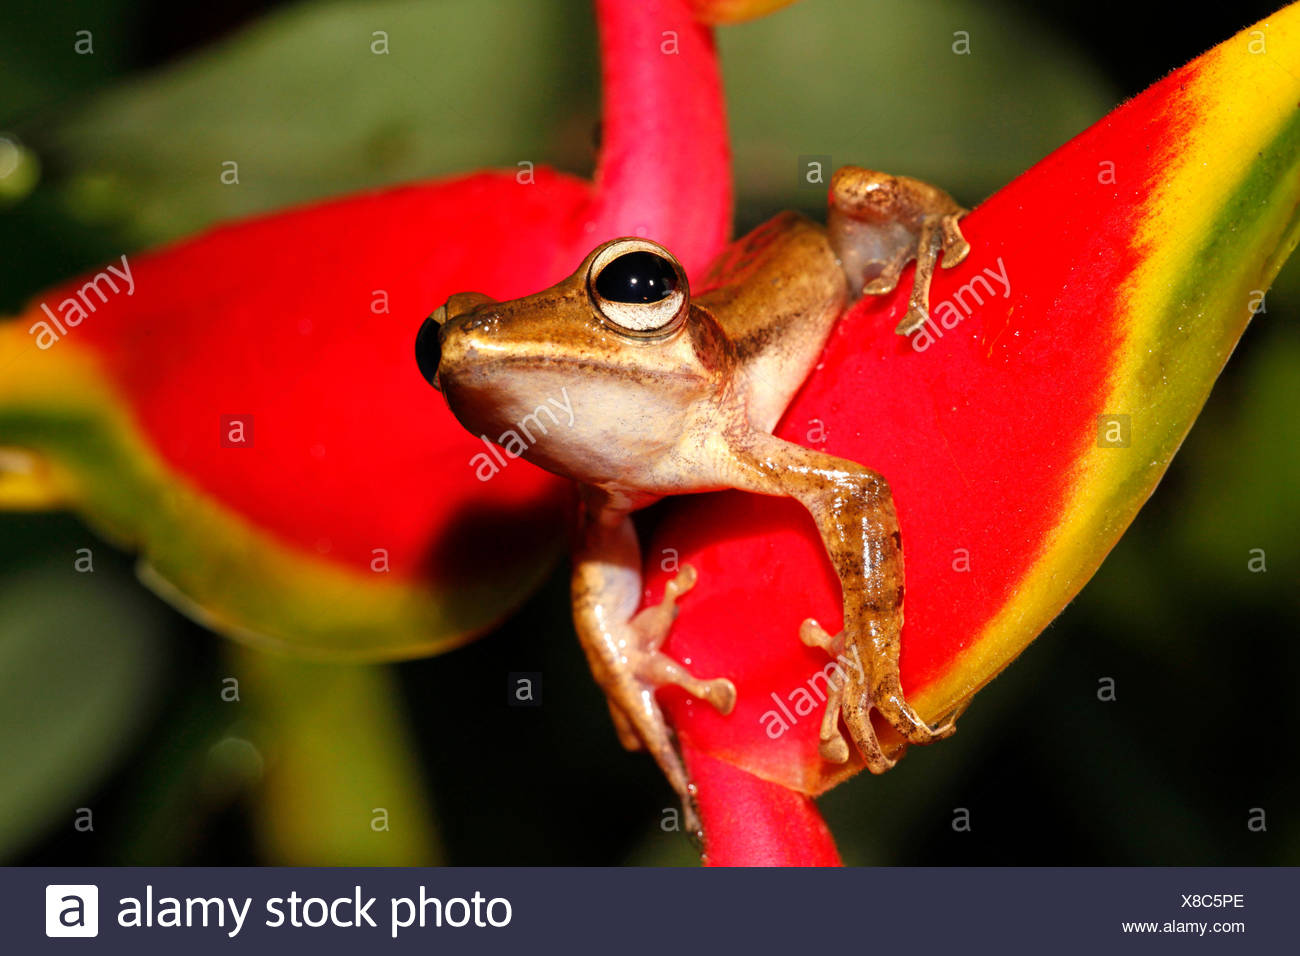 photo of a fourlined tree-frog on a Crab Claw Flower - Stock Image